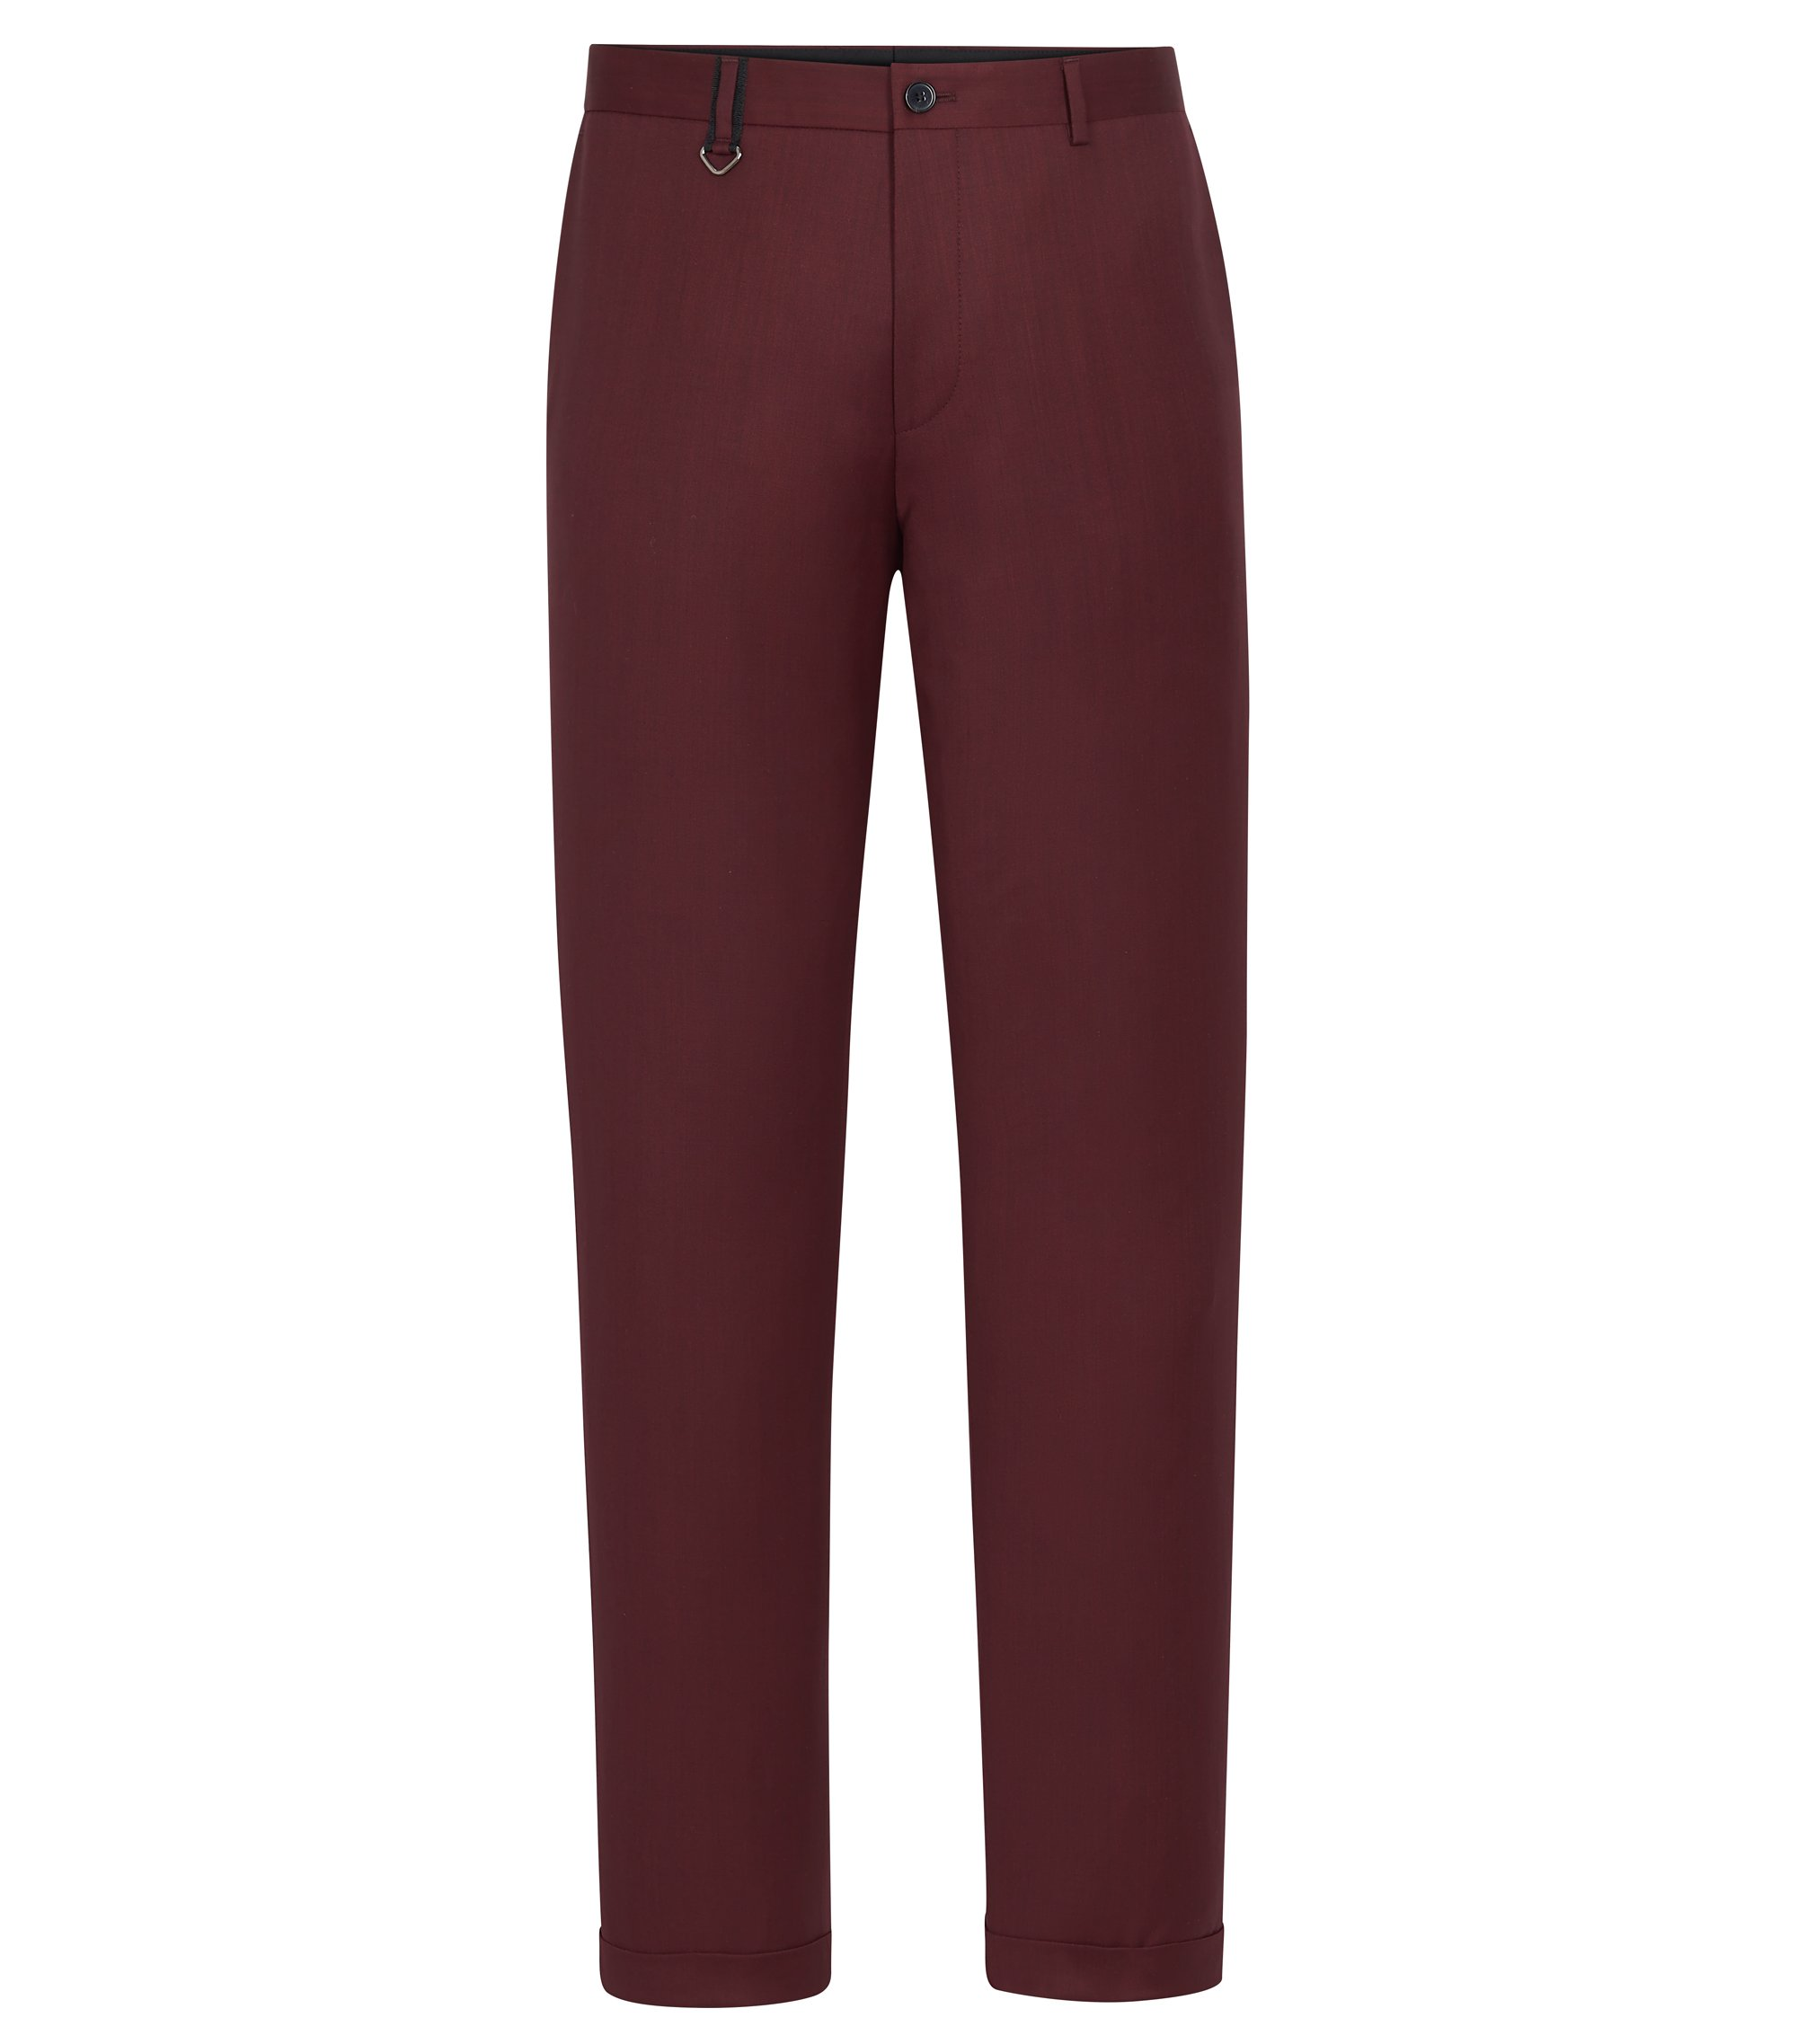 Virgin Wool Dress Pant, Slim Fit | Hielson, Dark Red